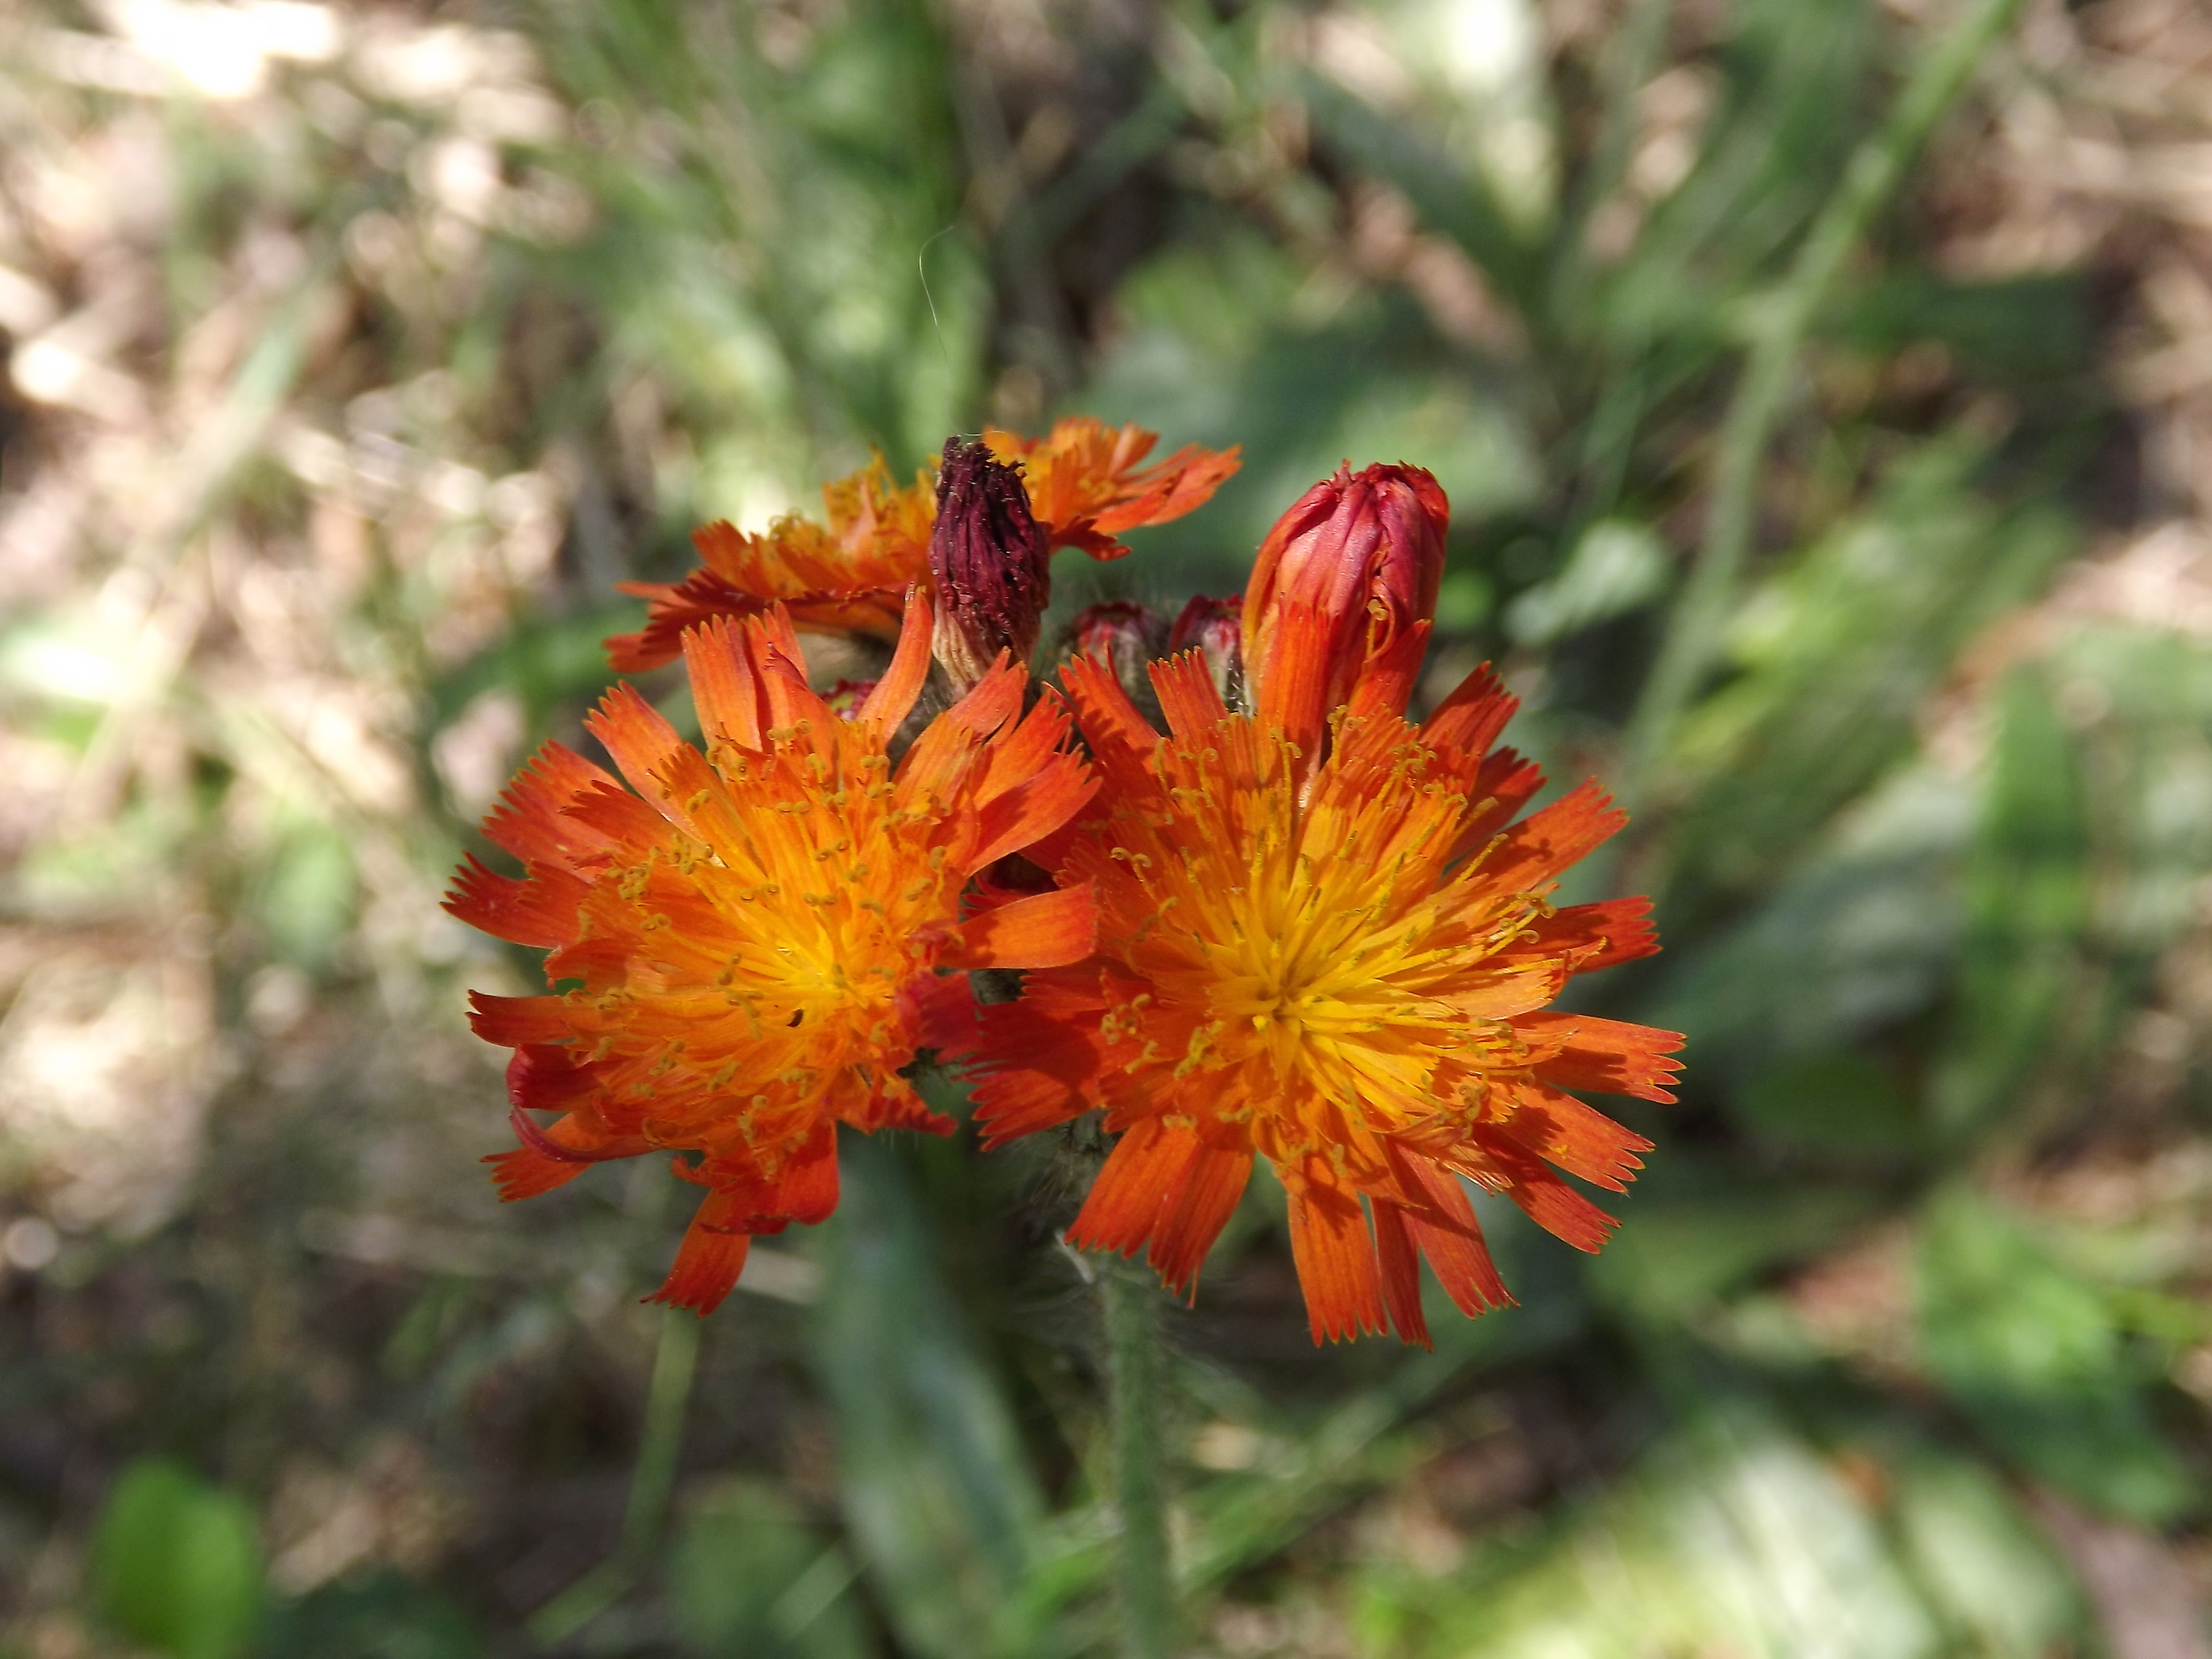 """Orange Hawkweed ( Hieracium aurantiacum ) - Orange Hawkweed is considered a weed in landscaping circles but I think it is a beautiful flower full of brilliant oranges, reds, and yellows. It is also known as the """"Devil's Paintbrush."""""""